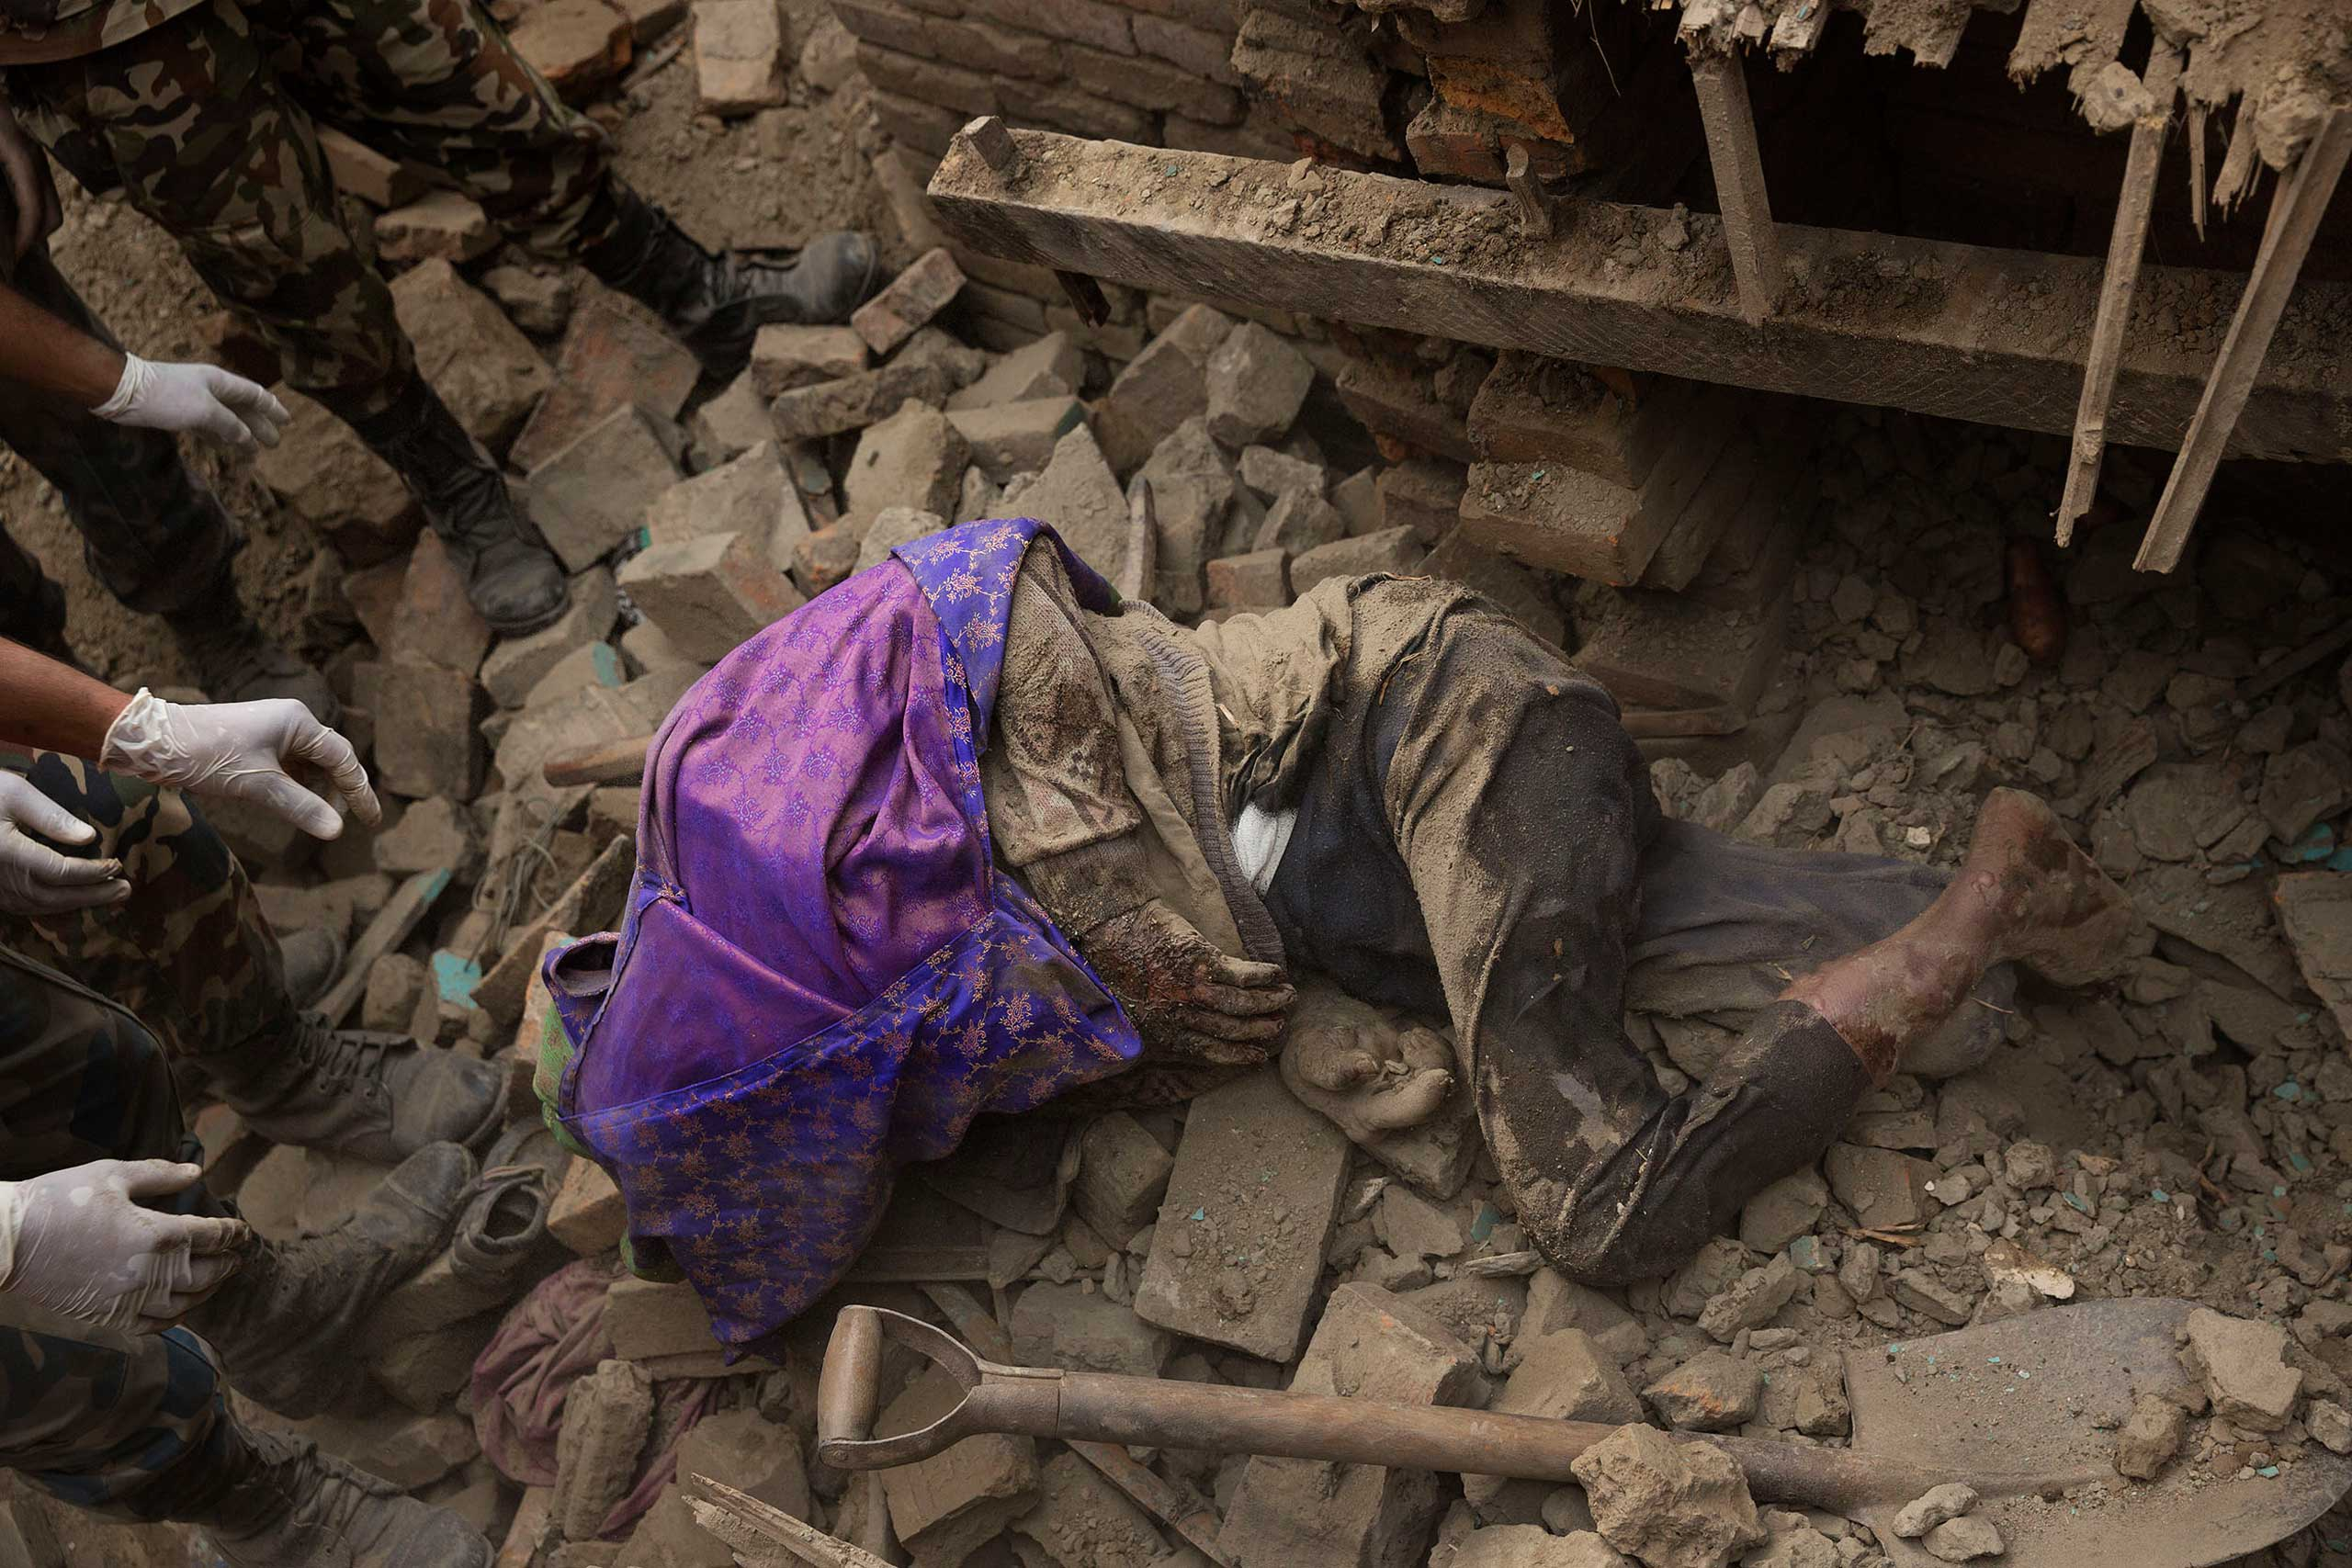 A body is found in the wreckage in Bhaktapur, April 29, 2015.